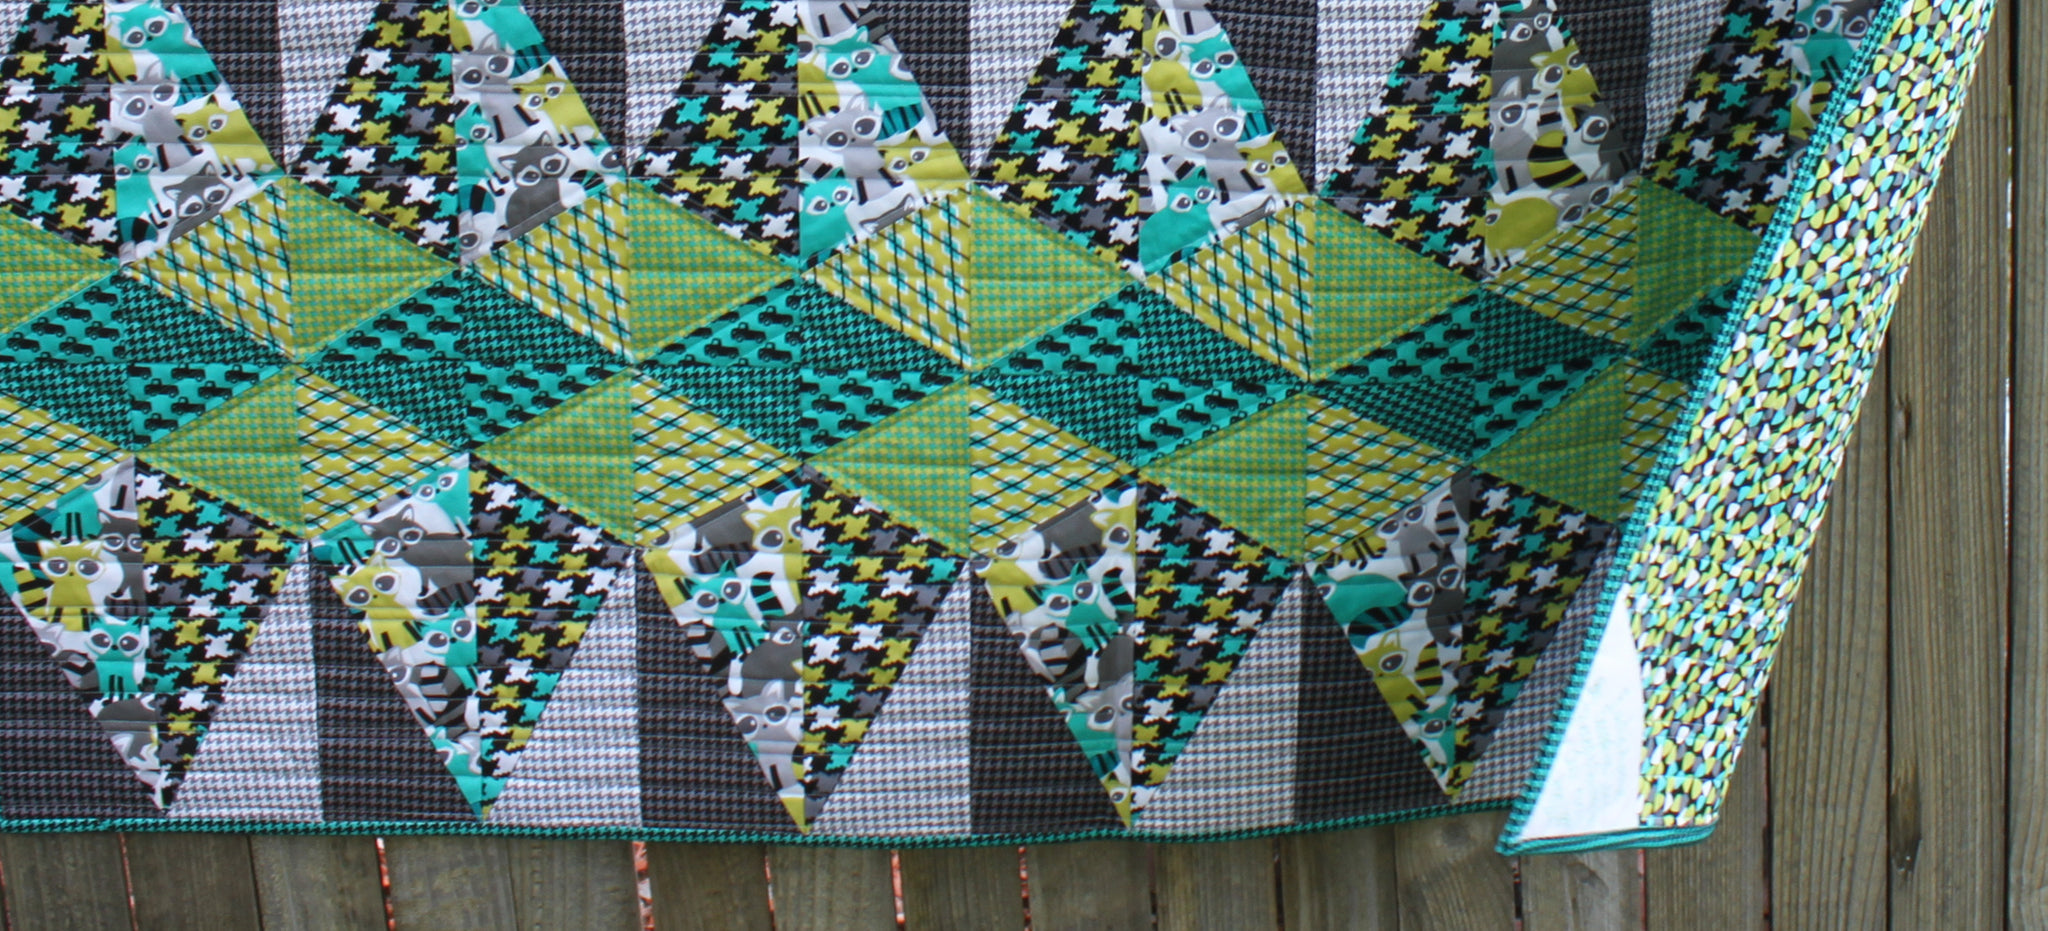 Euclid Avenue in Houndstooth & Friends